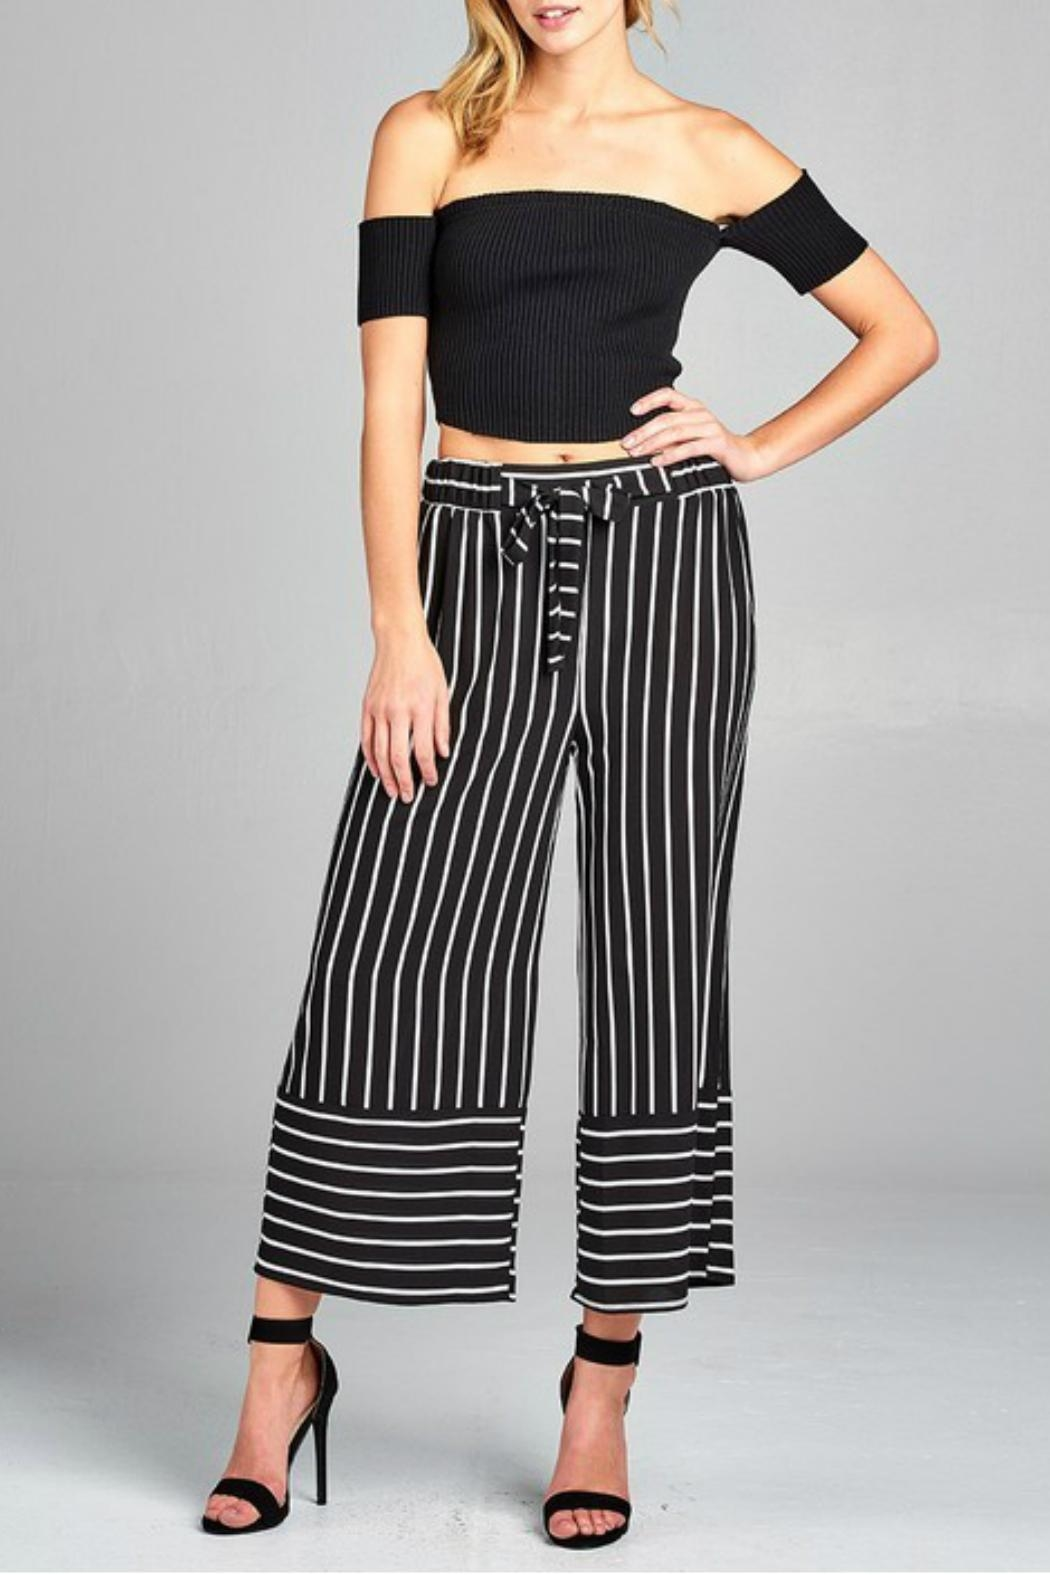 Minx Pinstriped Herring Trousers - Front Cropped Image